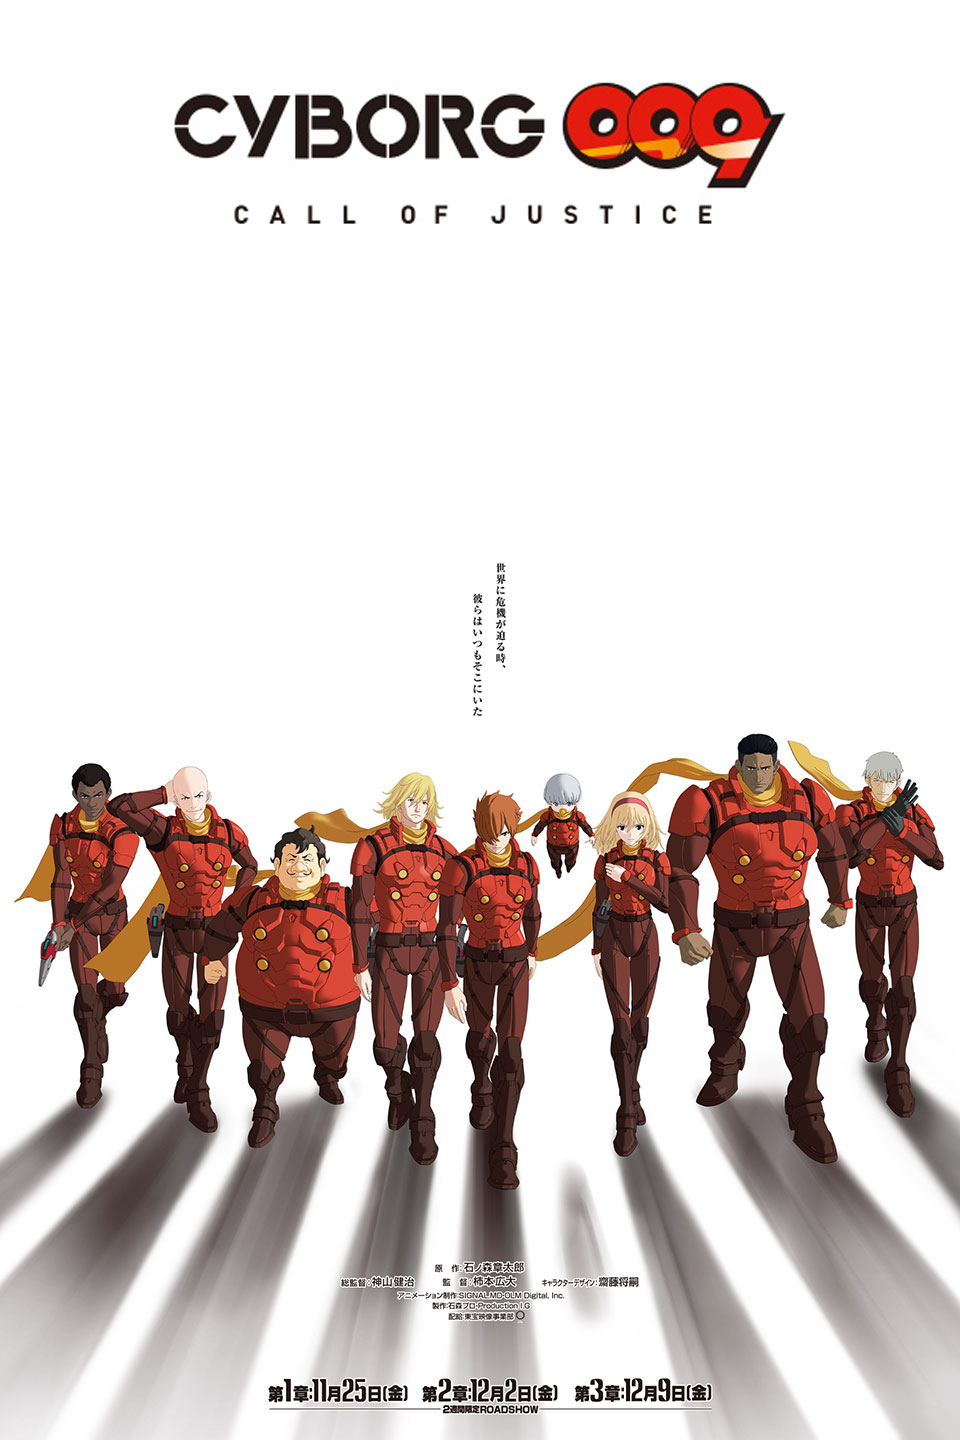 Cyborg 009 Call of Justice, locandina